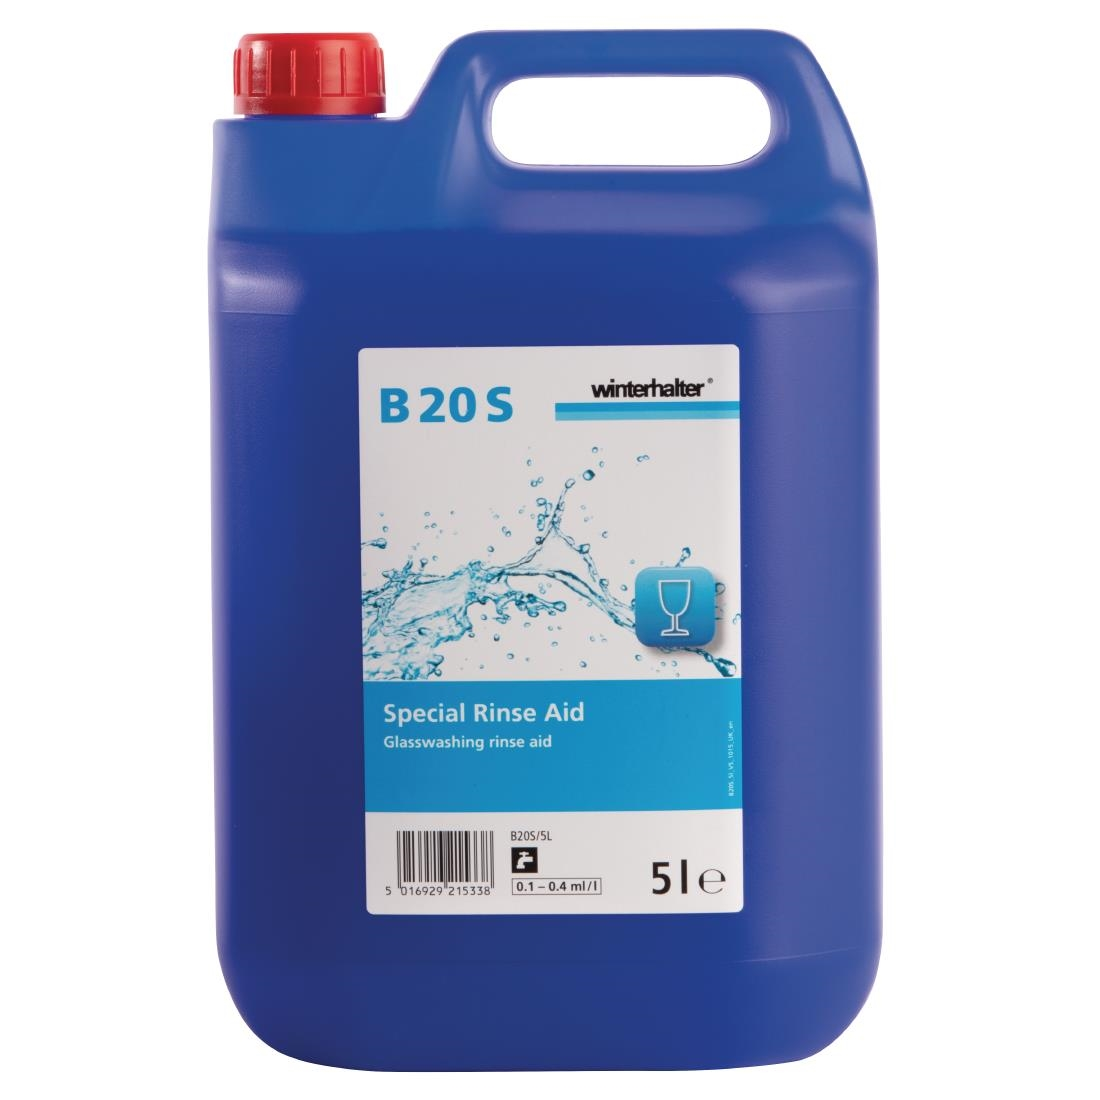 Winterhalter B20S Glasswasher Rinse Aid Concentrate 5Ltr (2 Pack) Pack of 2